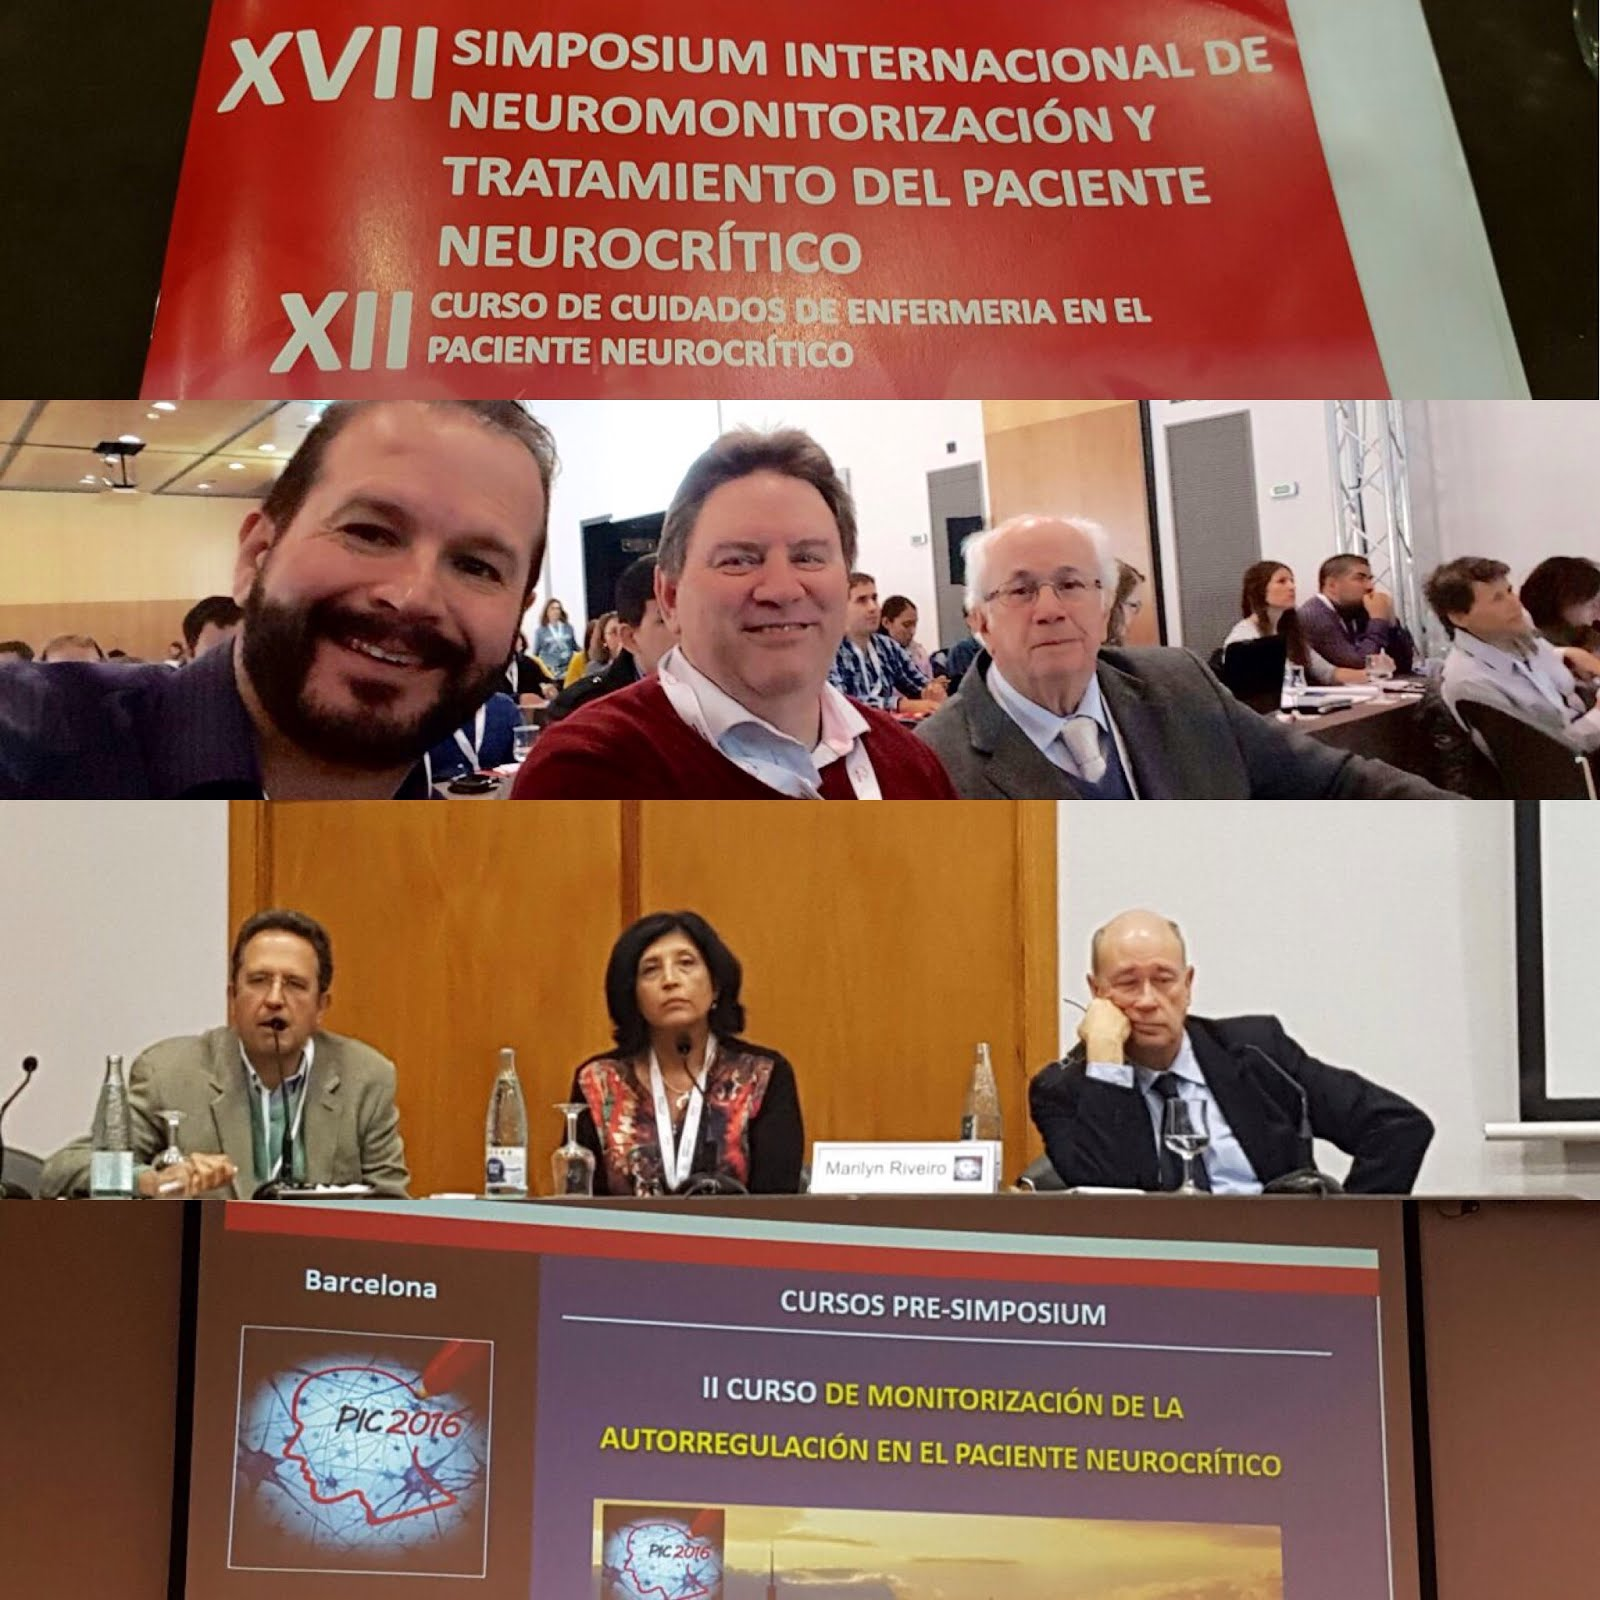 XVII Simposium International de Neuromonitorización y Tratamiento del Paciente Neurocrítico